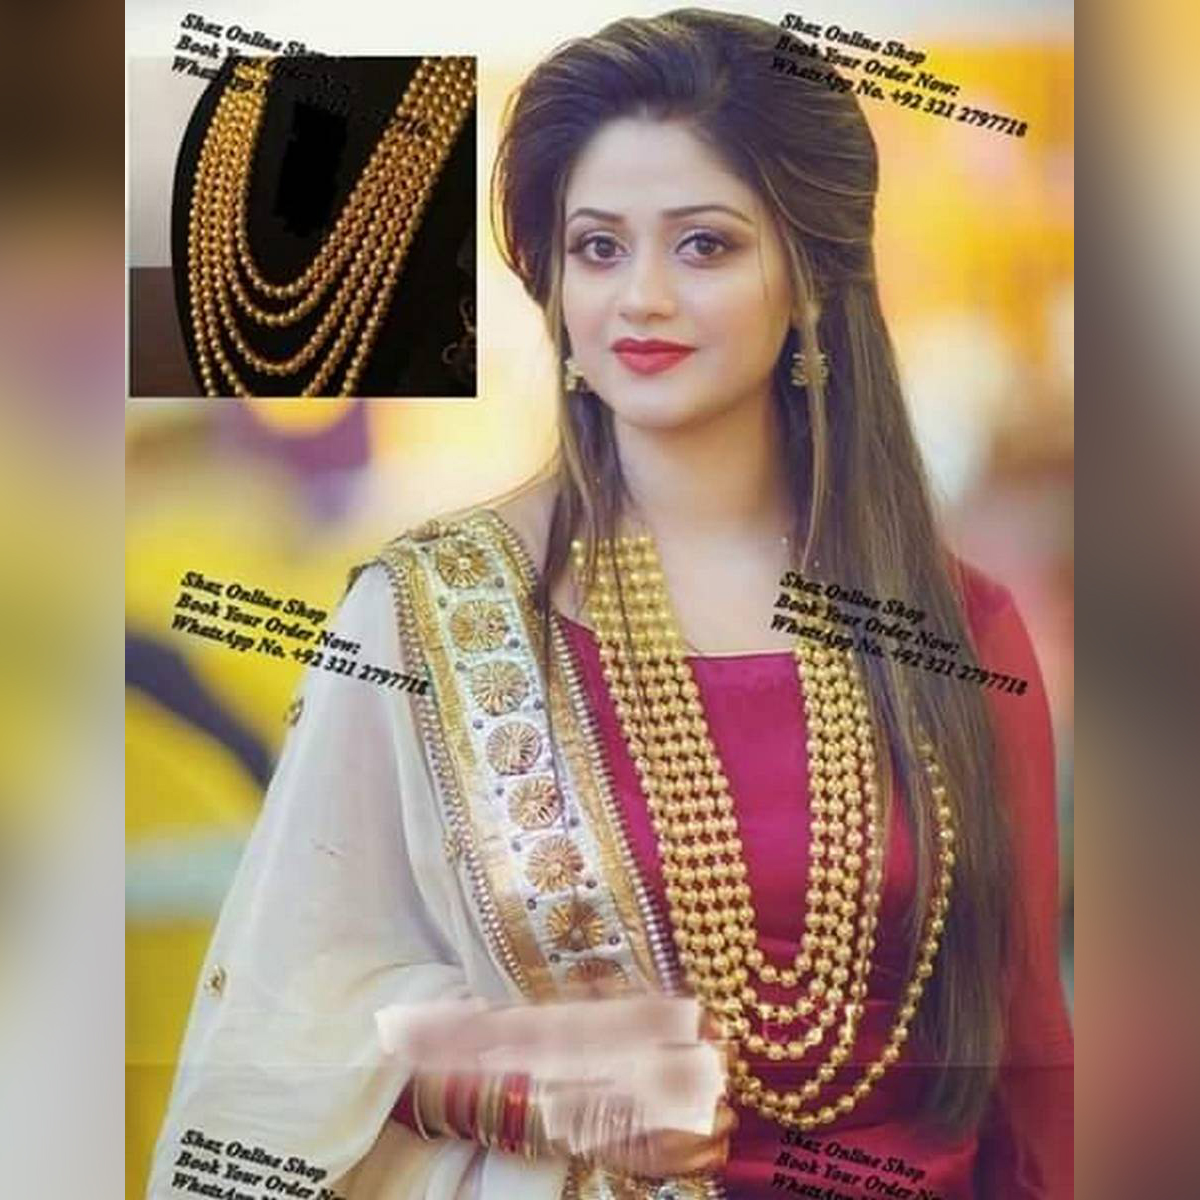 mala with jhoomke fashionable desing  Looking beautyfull style for her  gold pleted desing